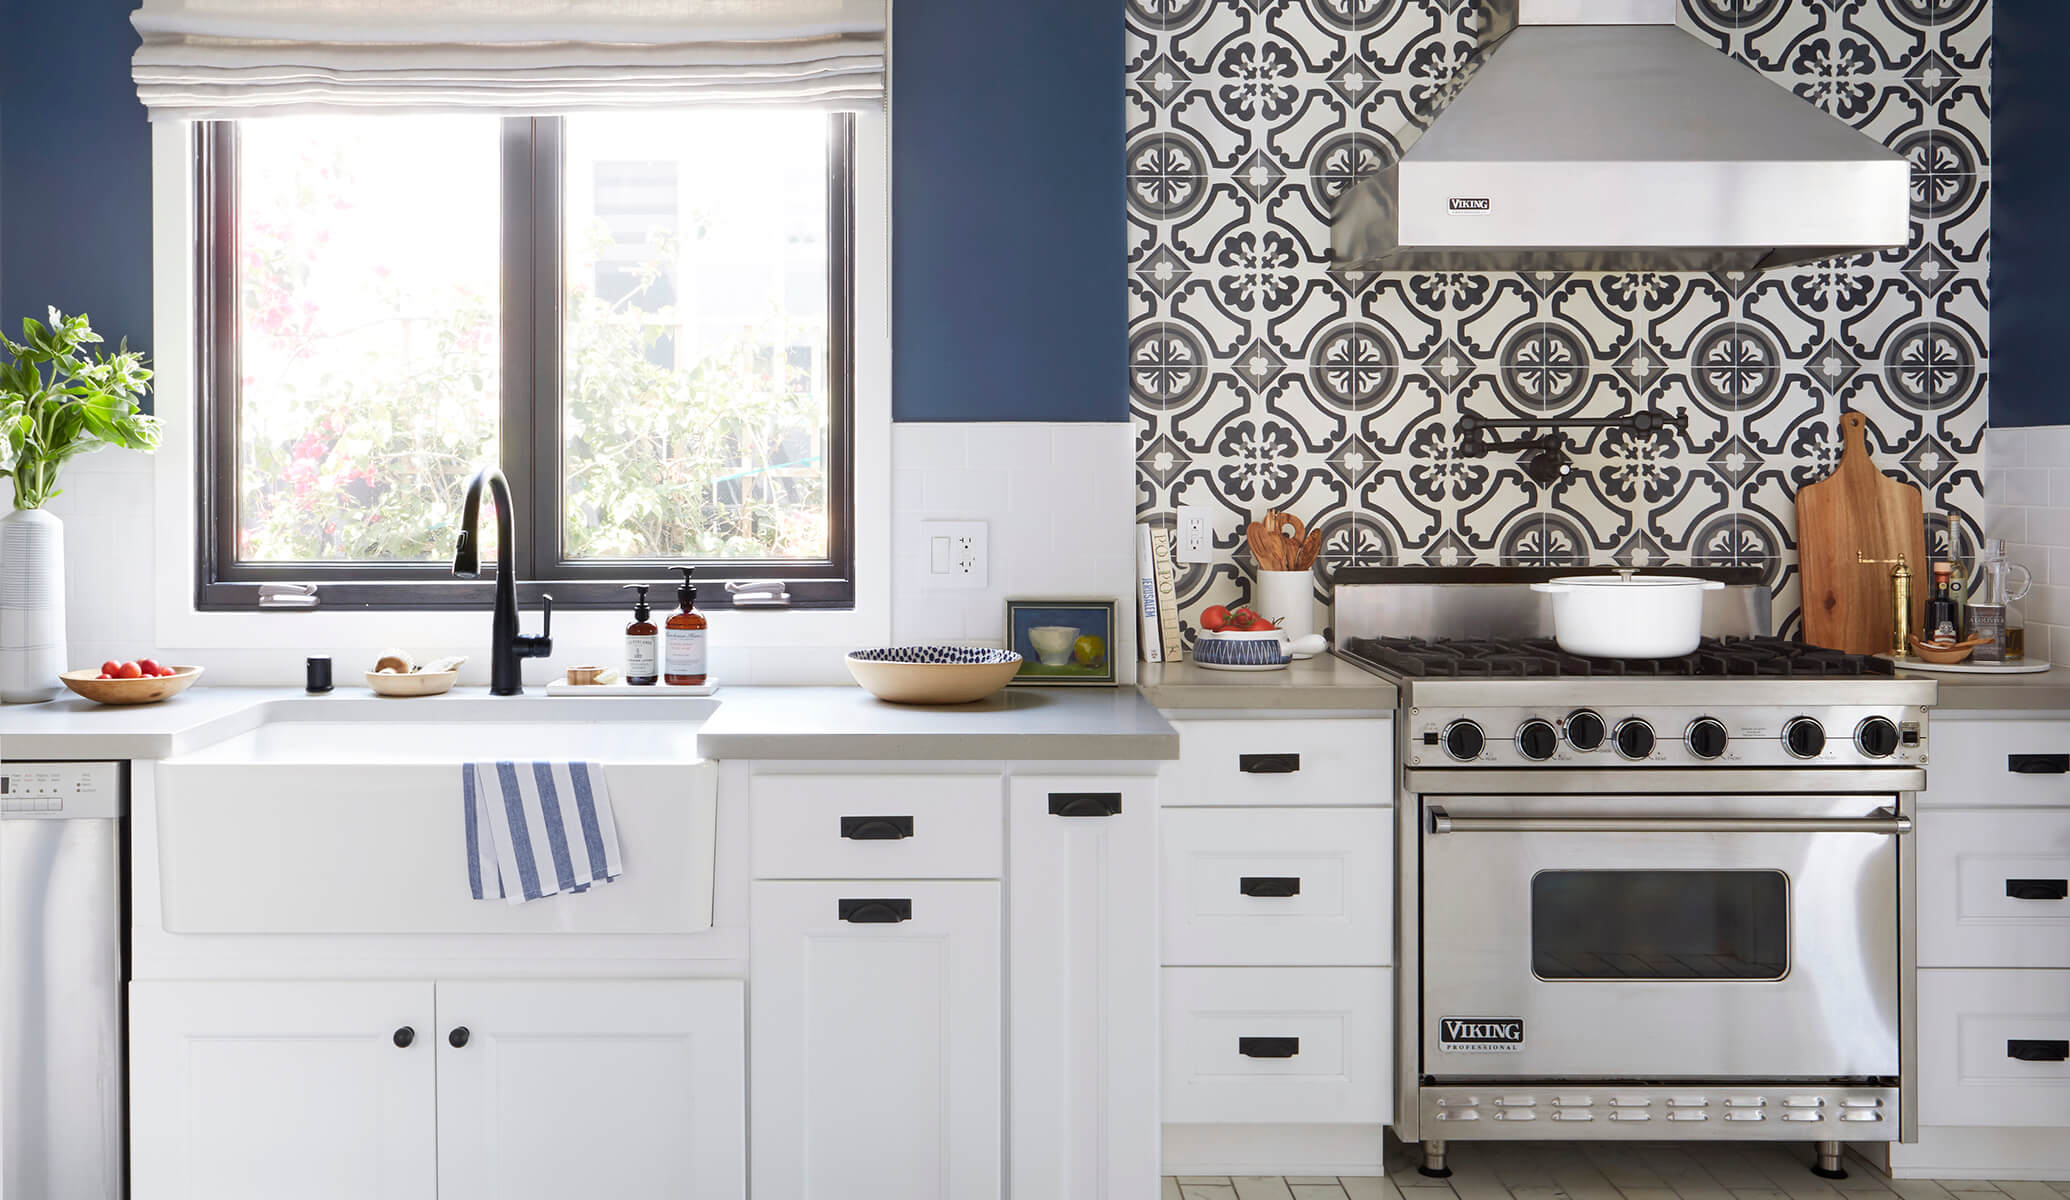 GINNY_MACDONALD_TILED_BACKSPLASH_FEATURED_IMAGE